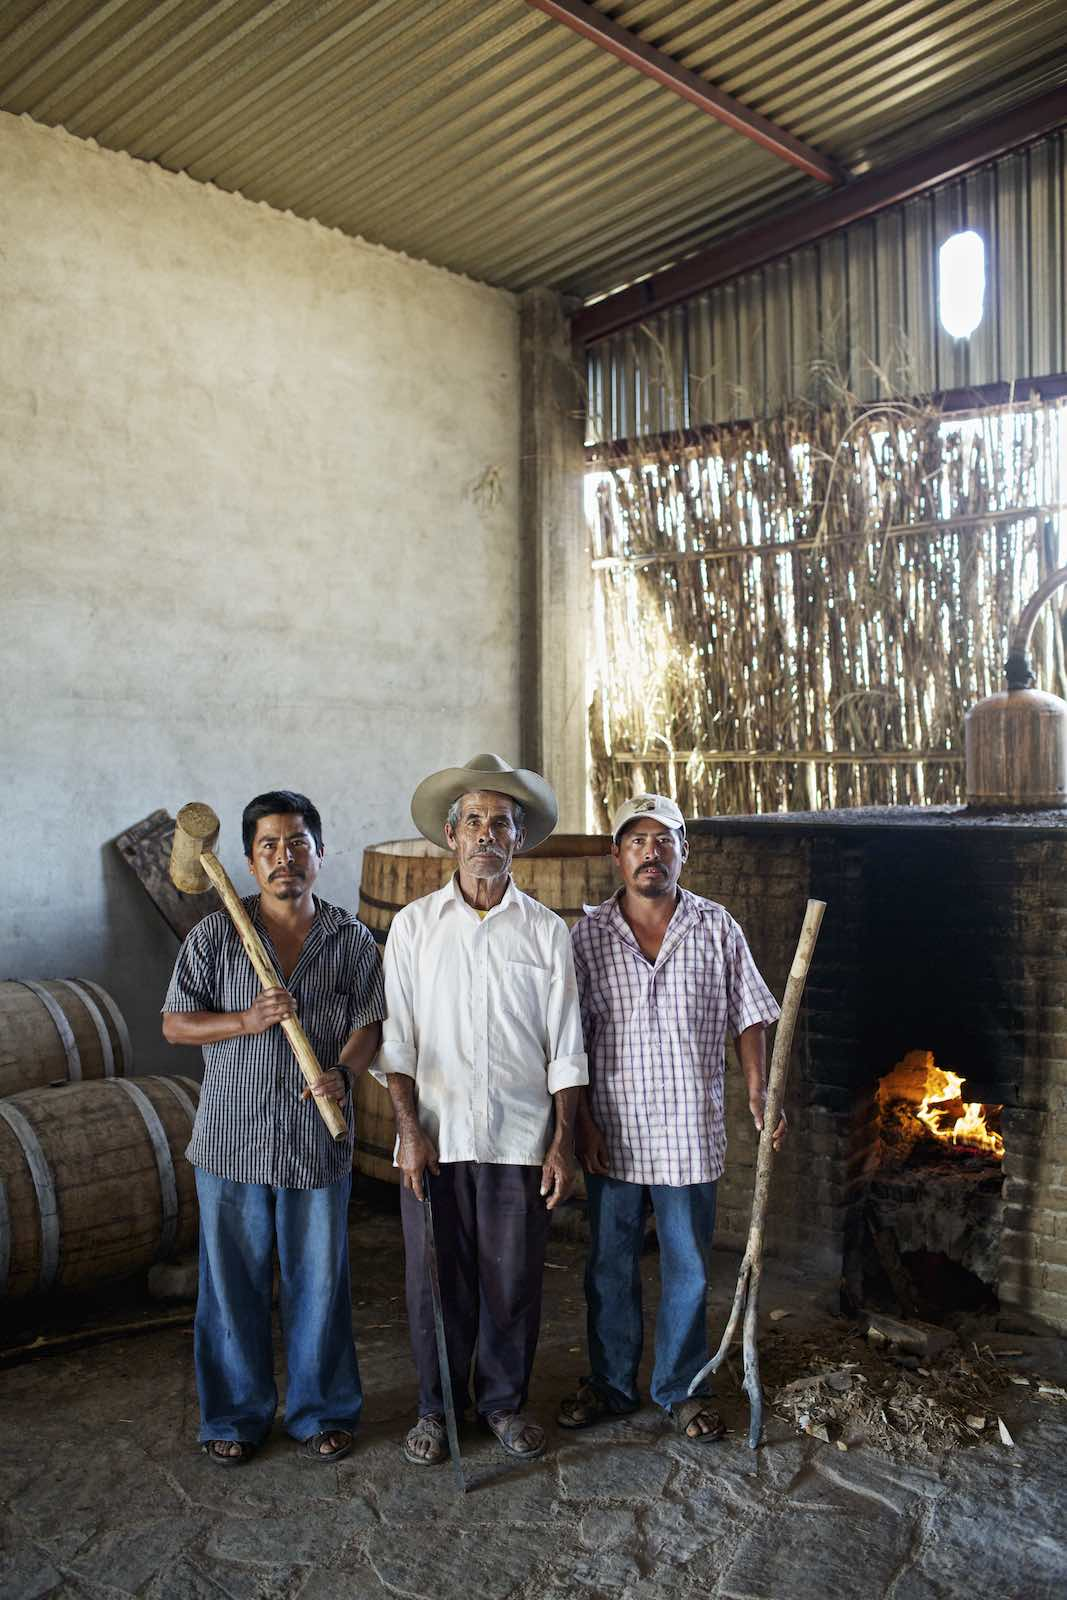 Jody Horton Photography - Mezcal workers standing together during production.